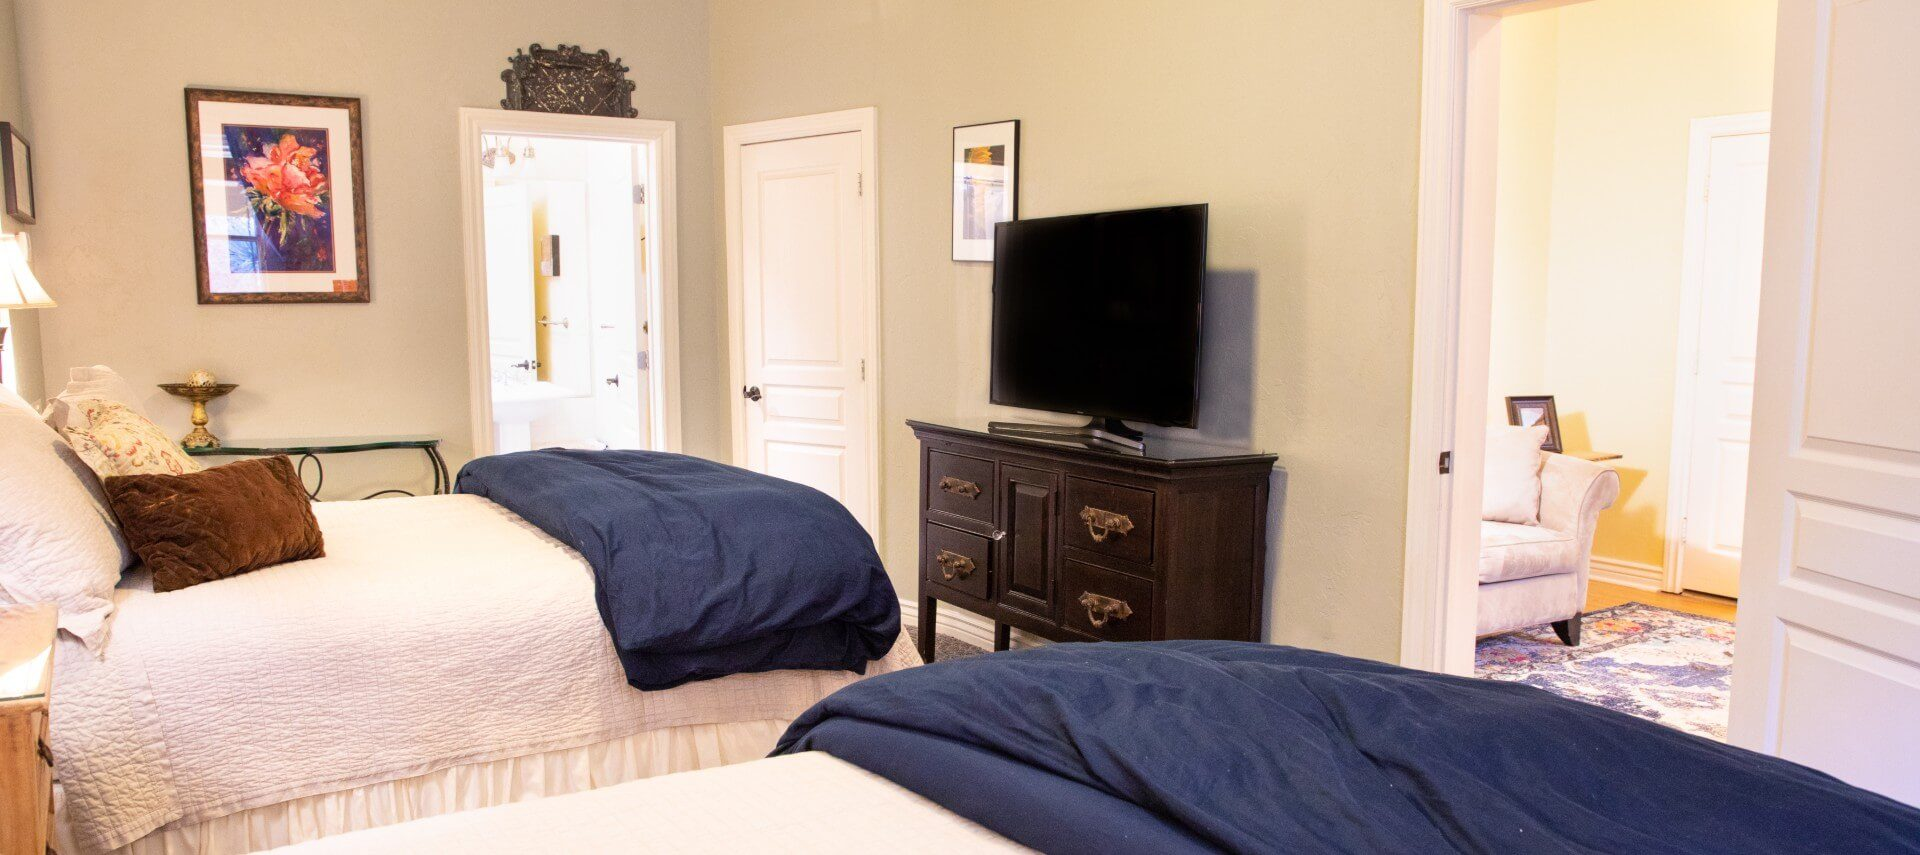 Two queen beds with white and blue bedding in room with TV console and doorway into separate sitting room with couch